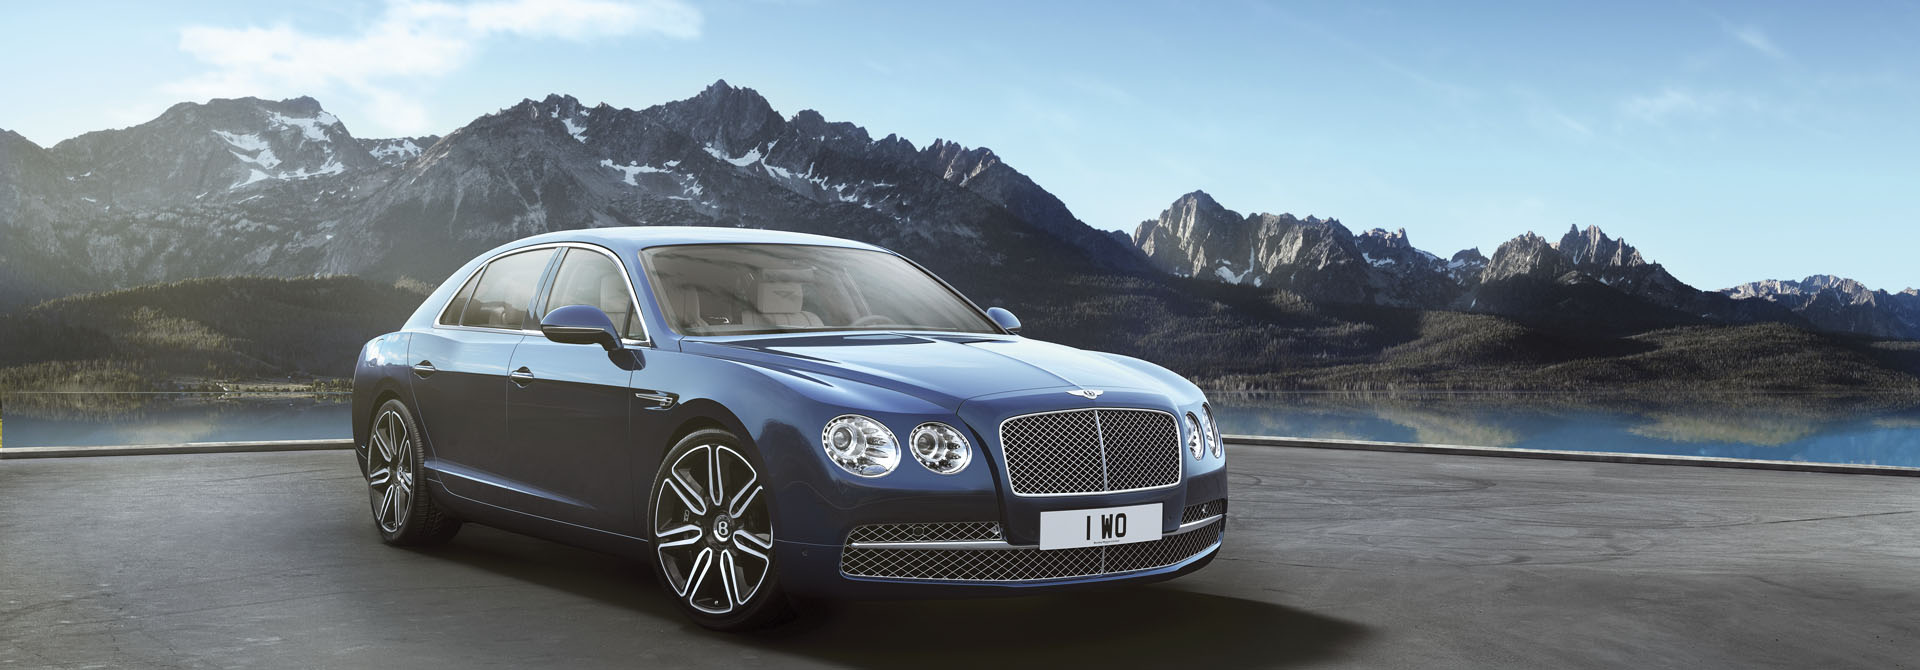 Bentley Motors Website World Of Mulliner Limited Editions Flying Spur By